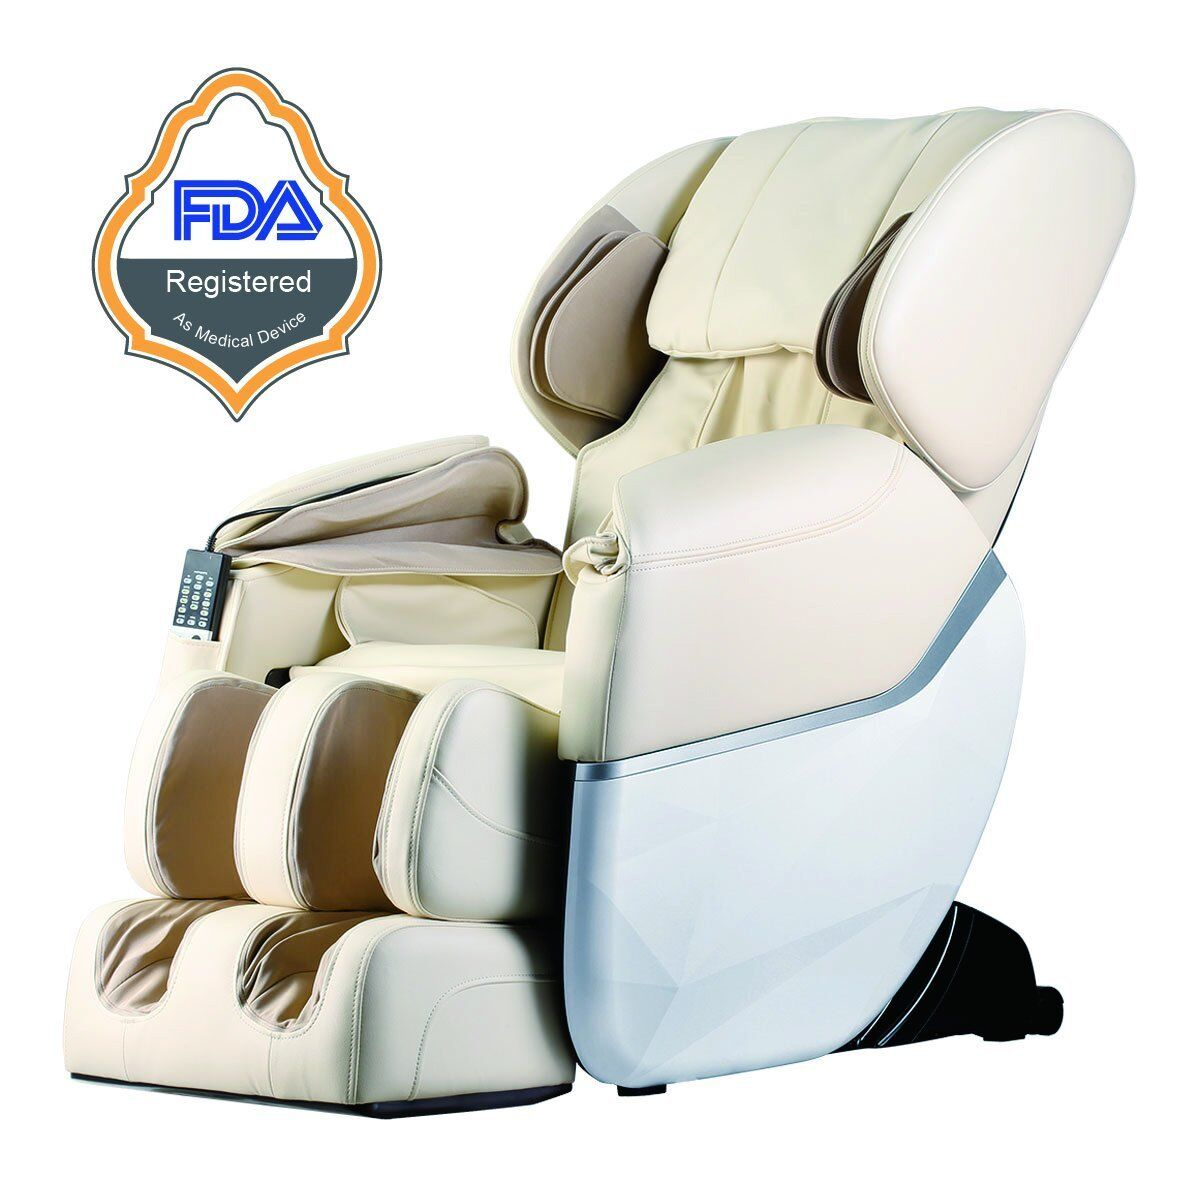 New Electric Full Body Shiatsu Massage Chair Recliner Zero Gravity w/Heat 77 Beige